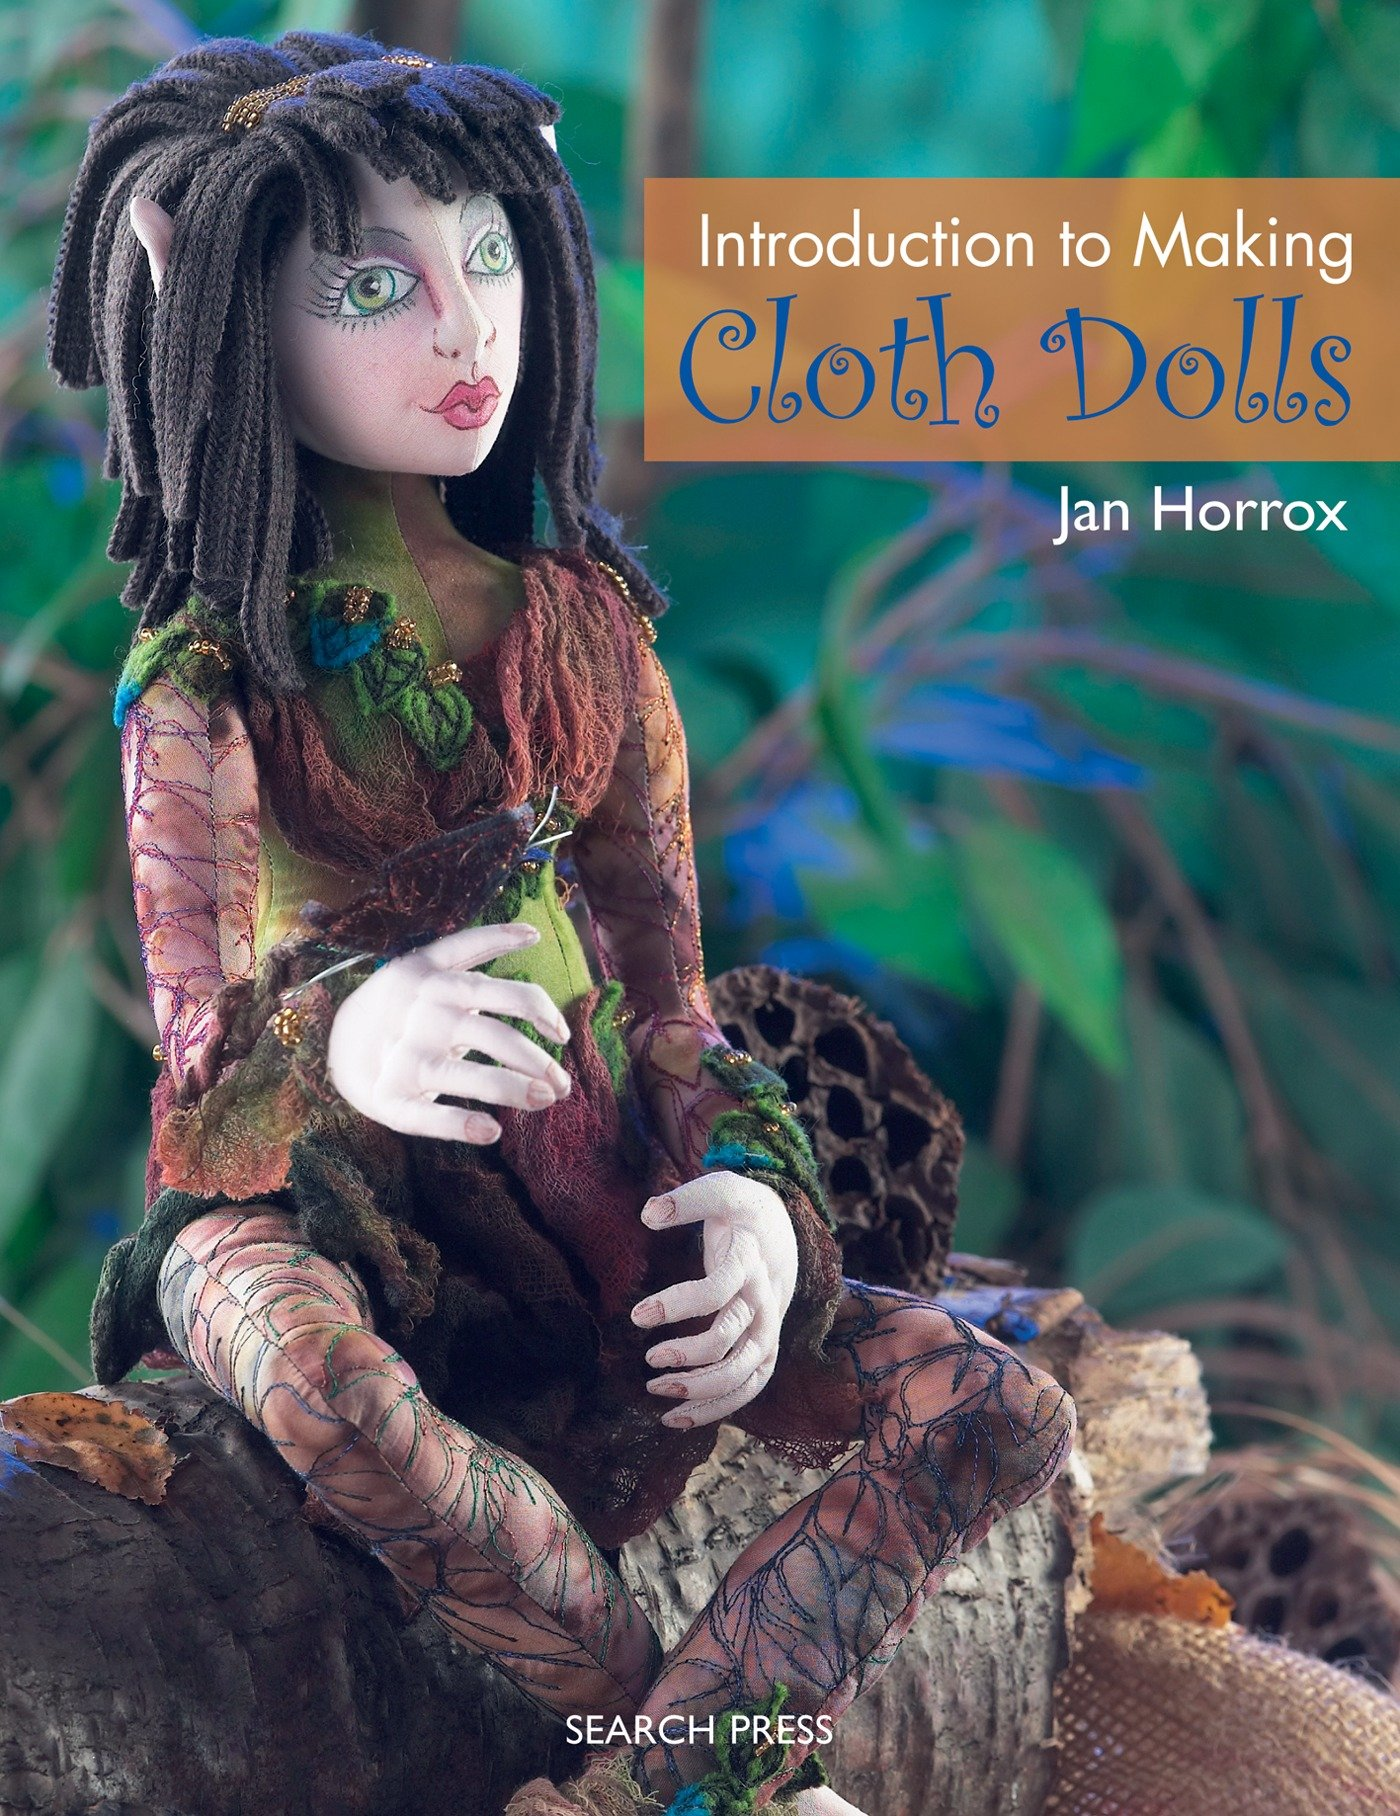 introduction-to-making-cloth-dolls